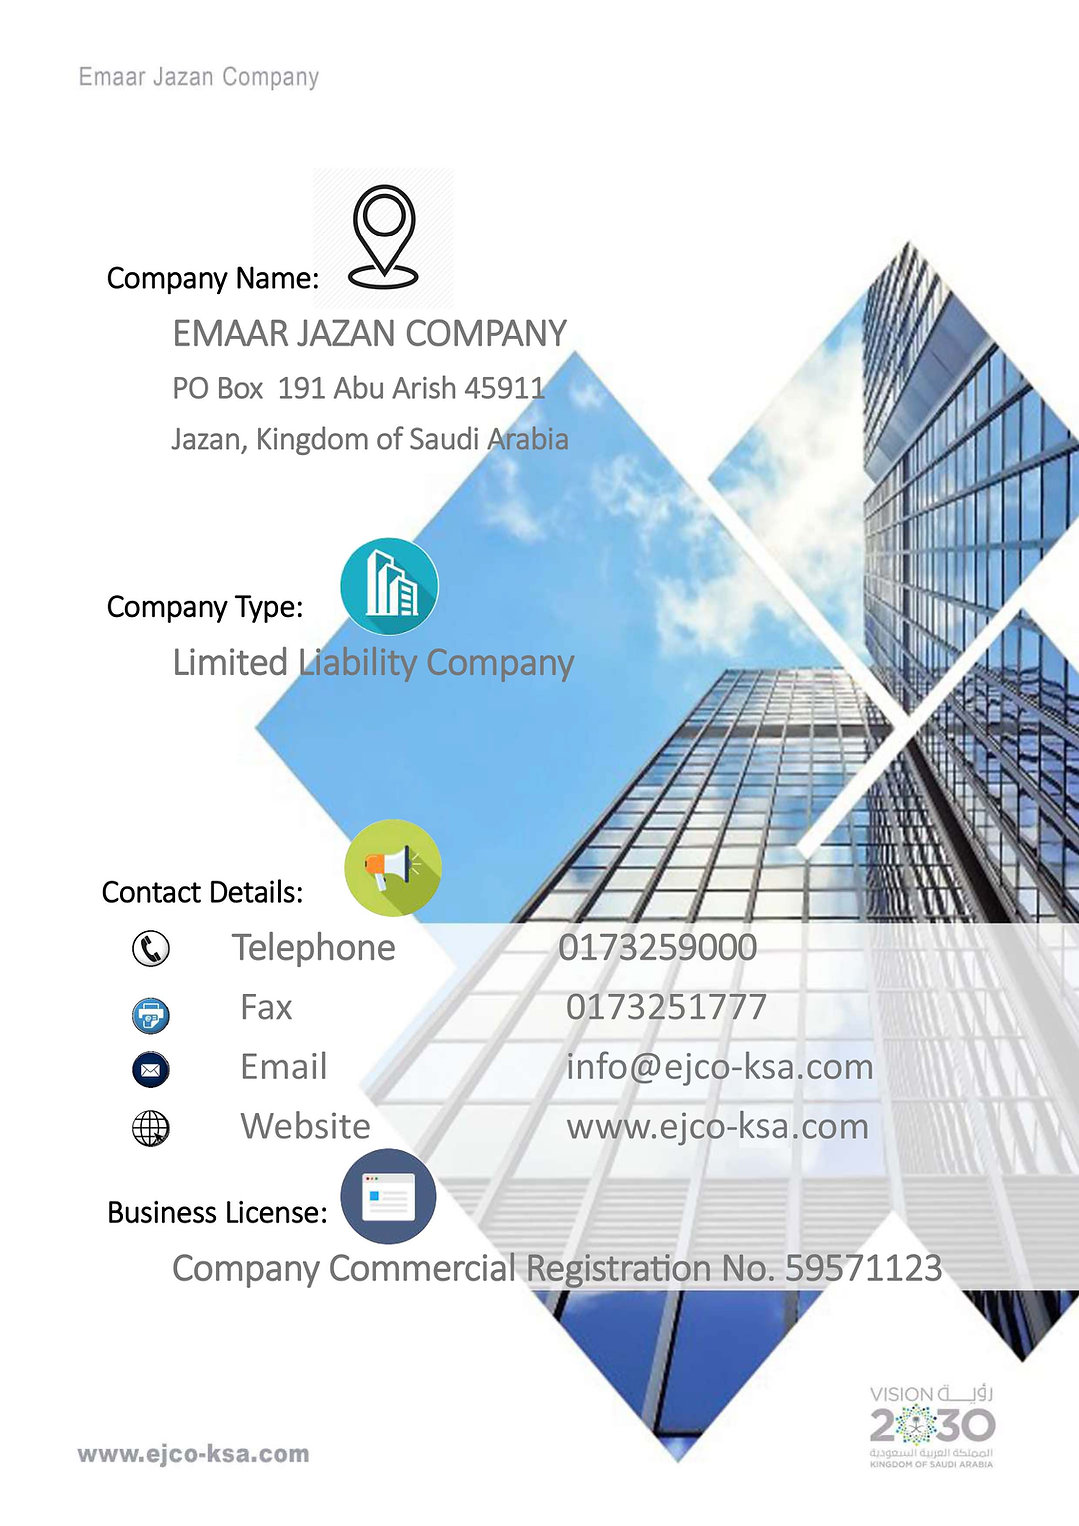 Company Profile Contacts.jpg